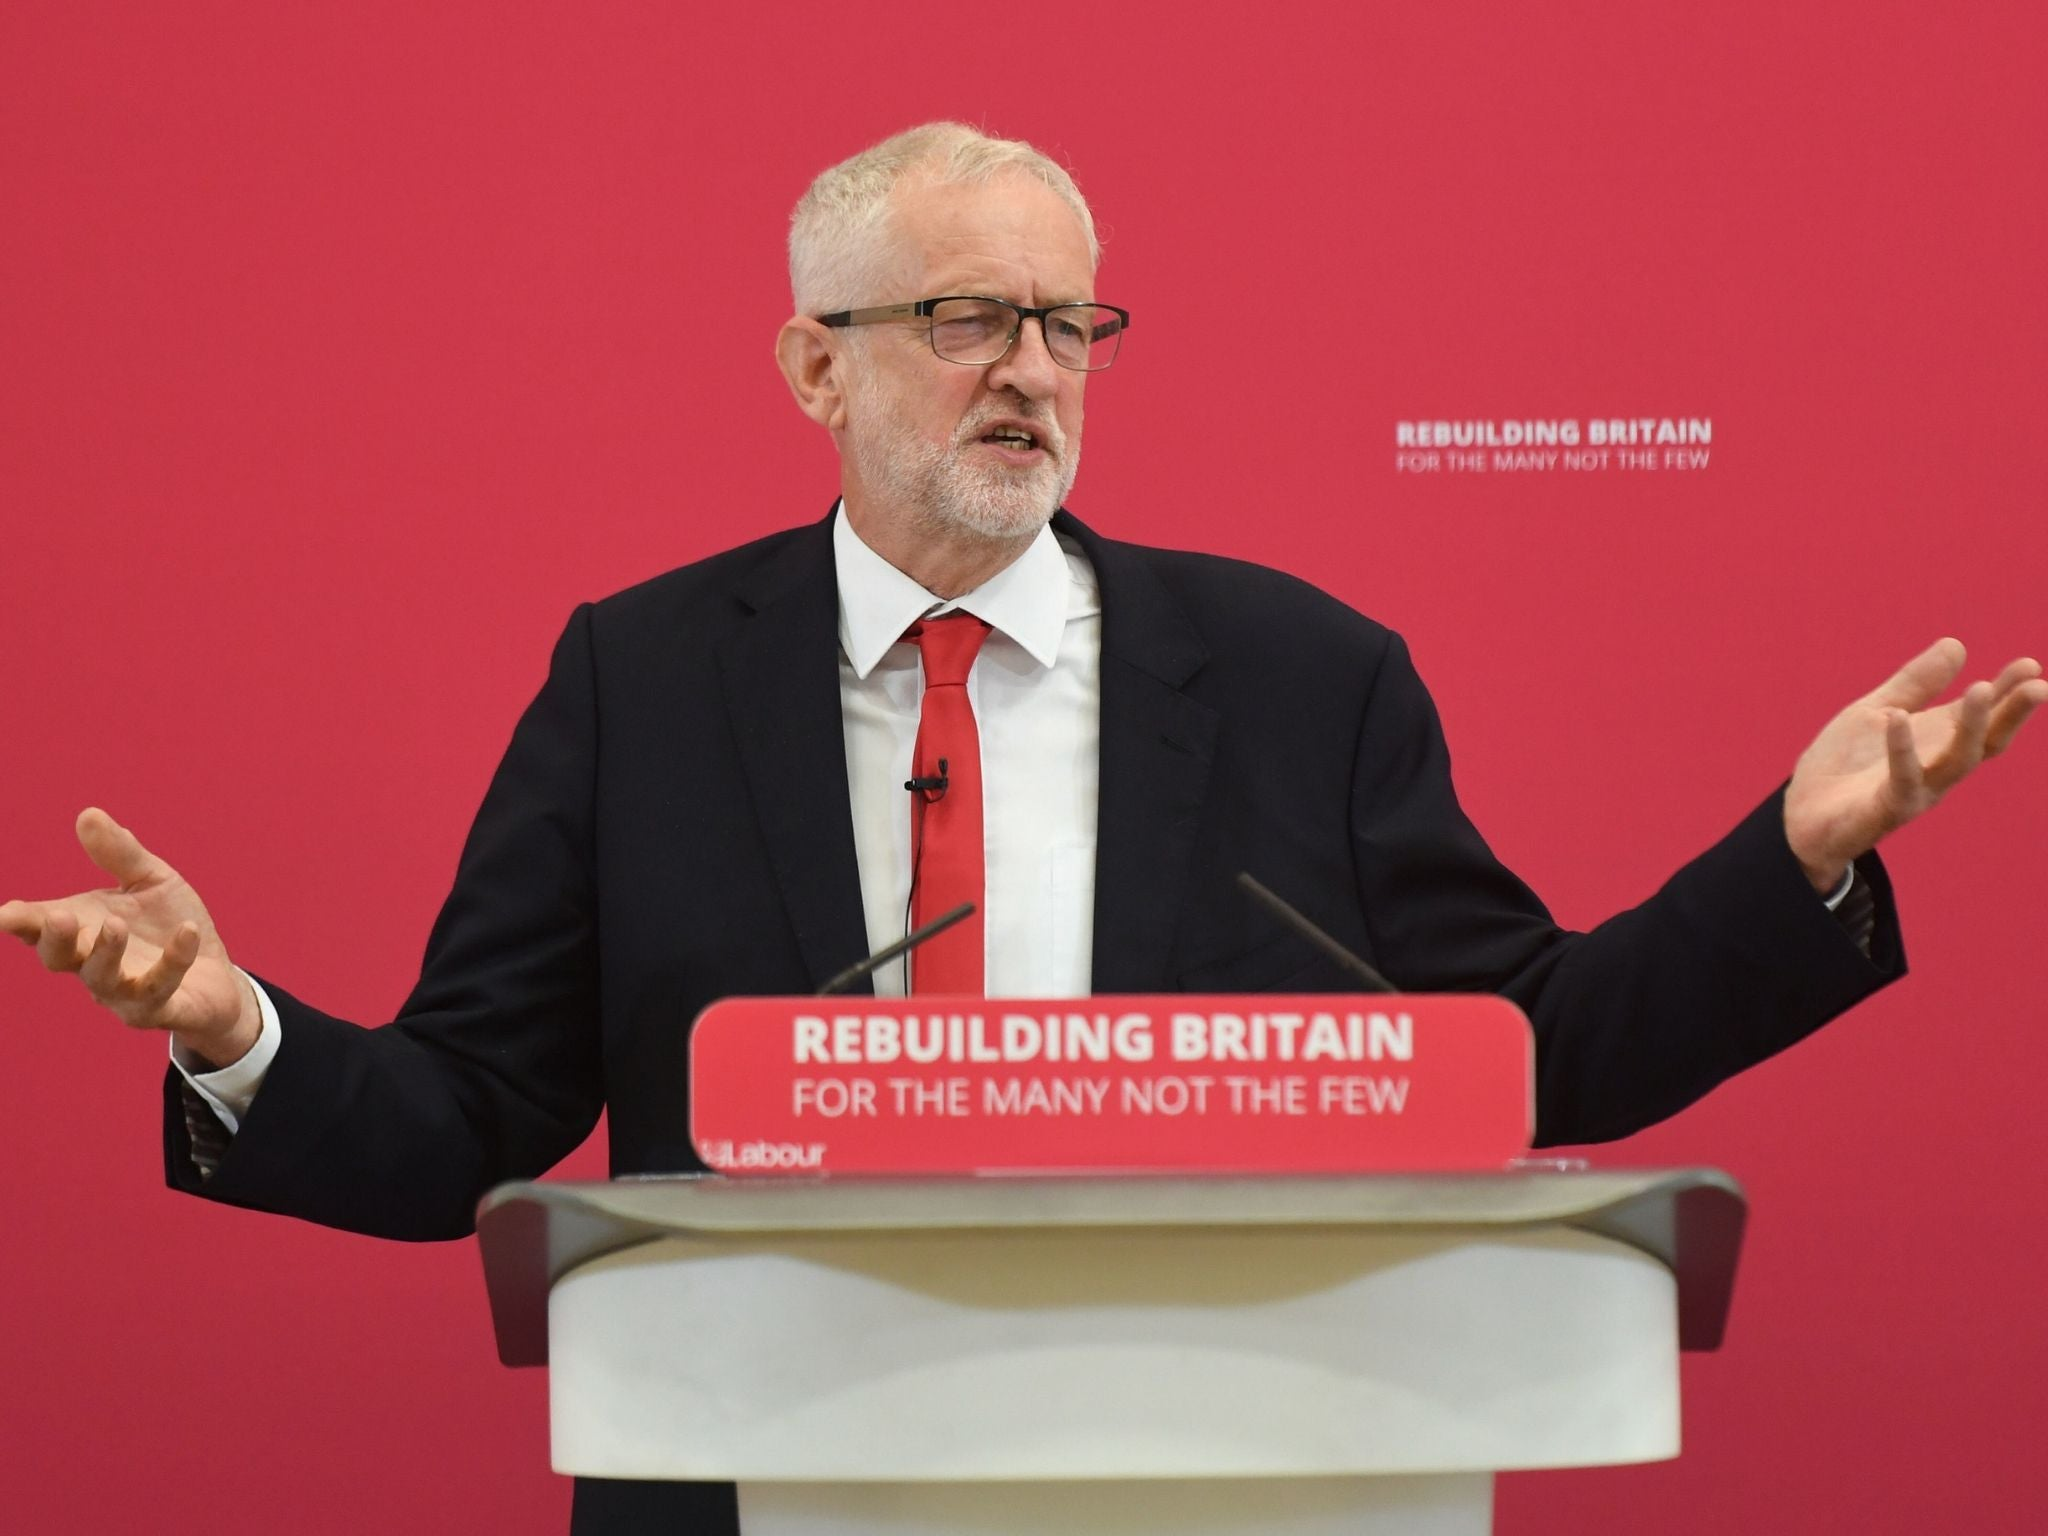 If Jeremy Corbyn wanted to do 'everything necessary' to stop no-deal Brexit, he'd have a plan